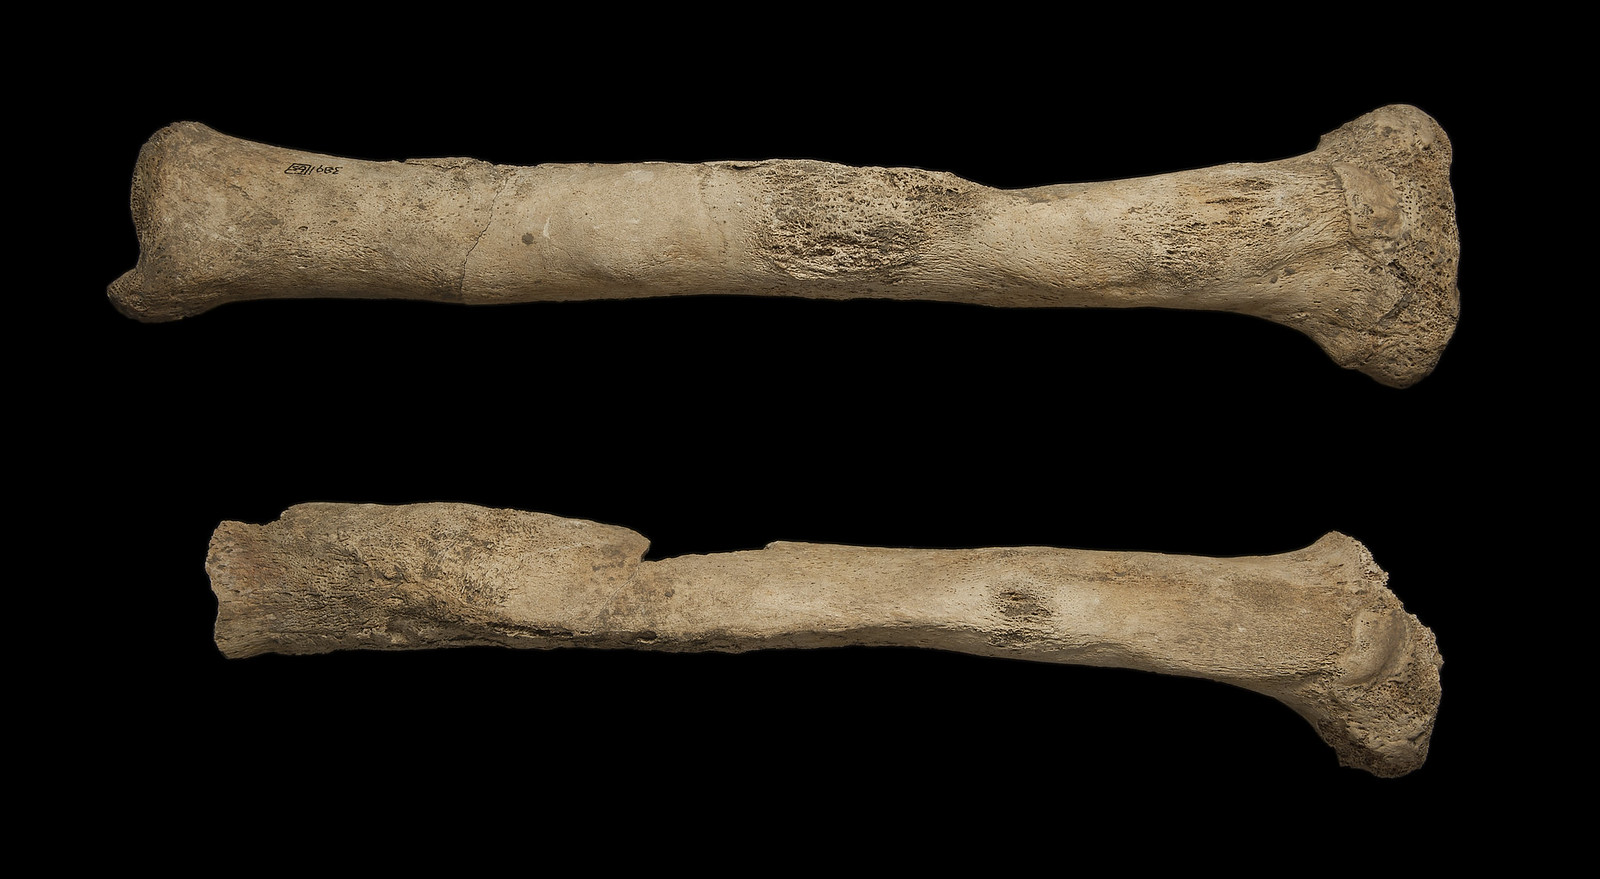 Right and left tibia showing an abnormally thickened appearance, along with new bone formation on the outer surface